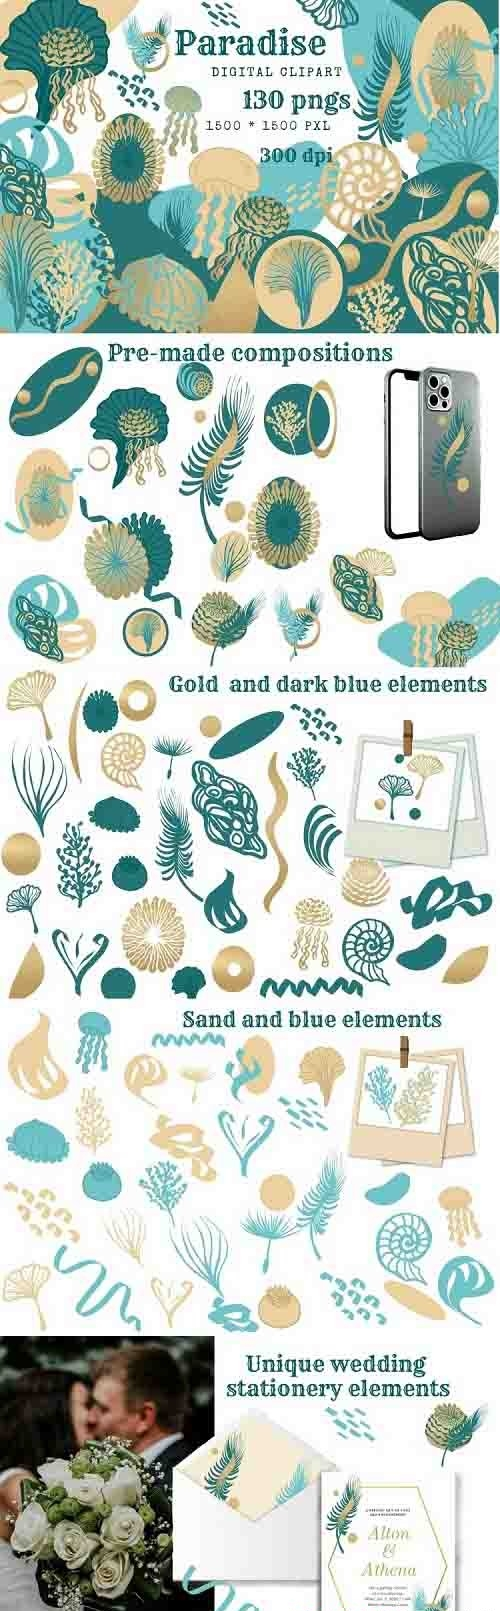 Paradise aesthetic shapes clipart, beach color shapes png - 1232488